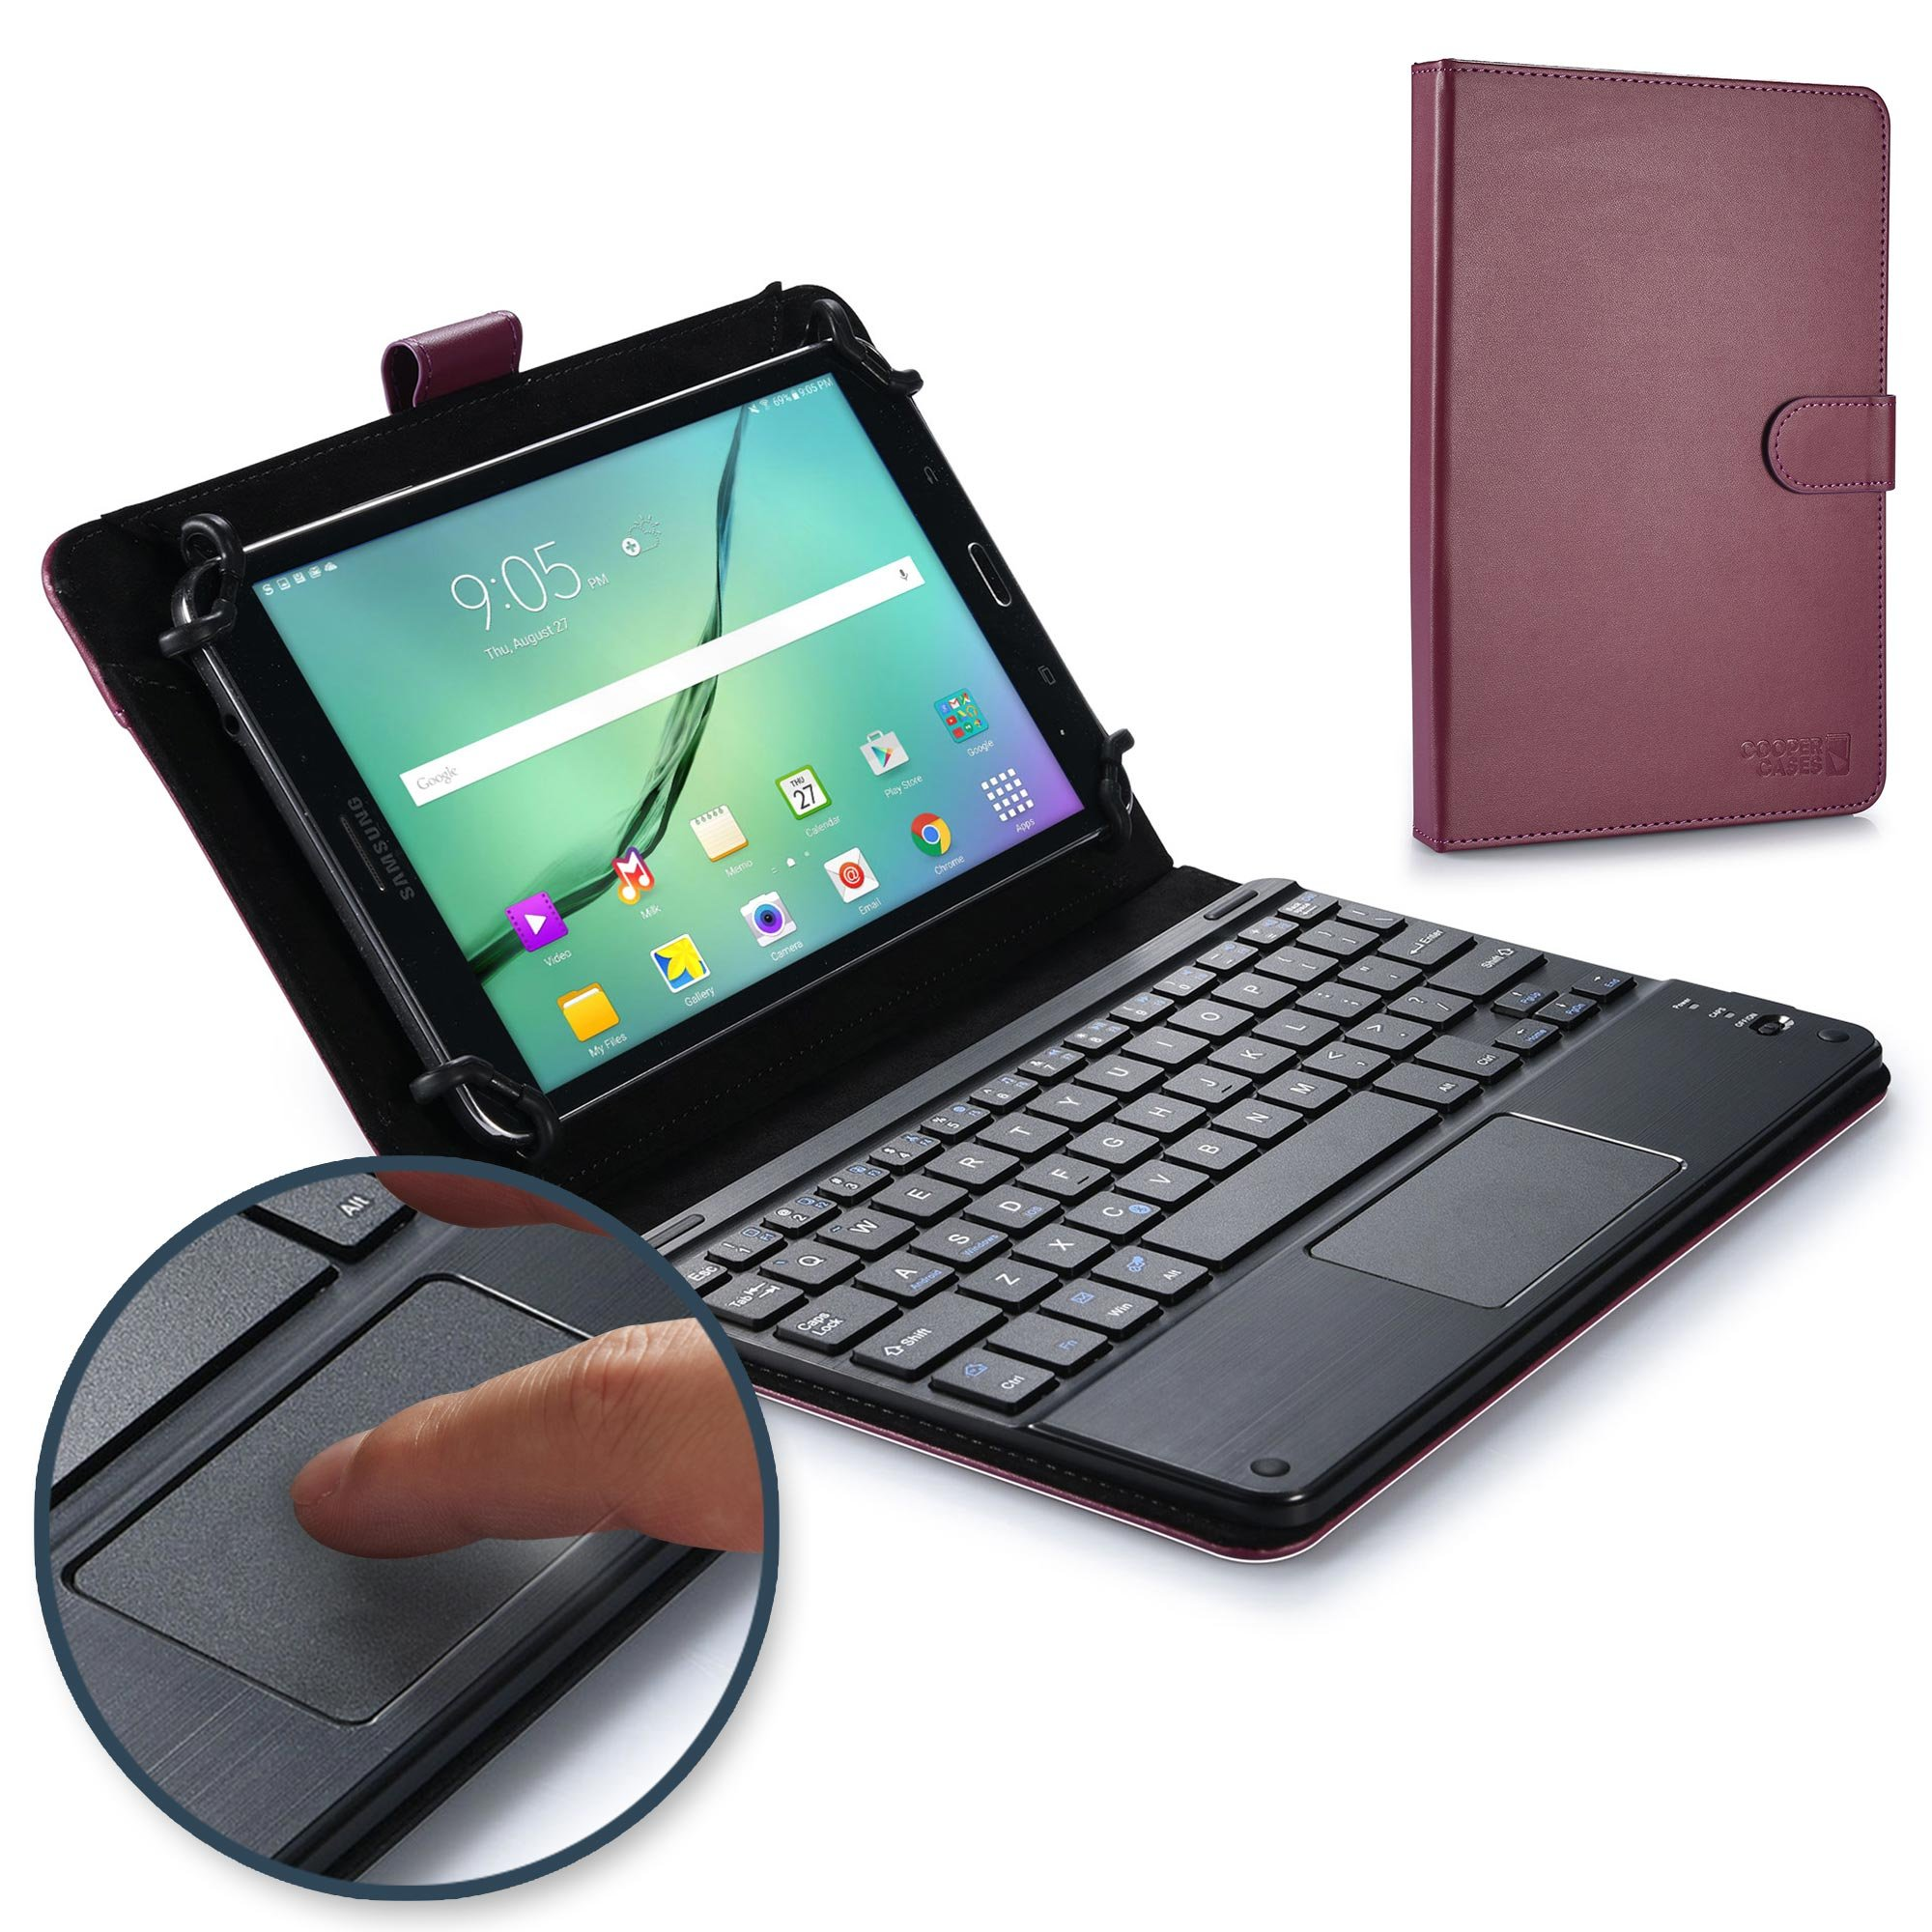 COOPER TOUCHPAD EXECUTIVE Keyboard case for 8'' - 8.9'' inch tablets | 2-in-1 Bluetooth Wireless Keyboard with Touchpad & Leather Folio Cover | Touchpad Mouse, Stand, 100HR Battery, 14 Hotkeys, Purple